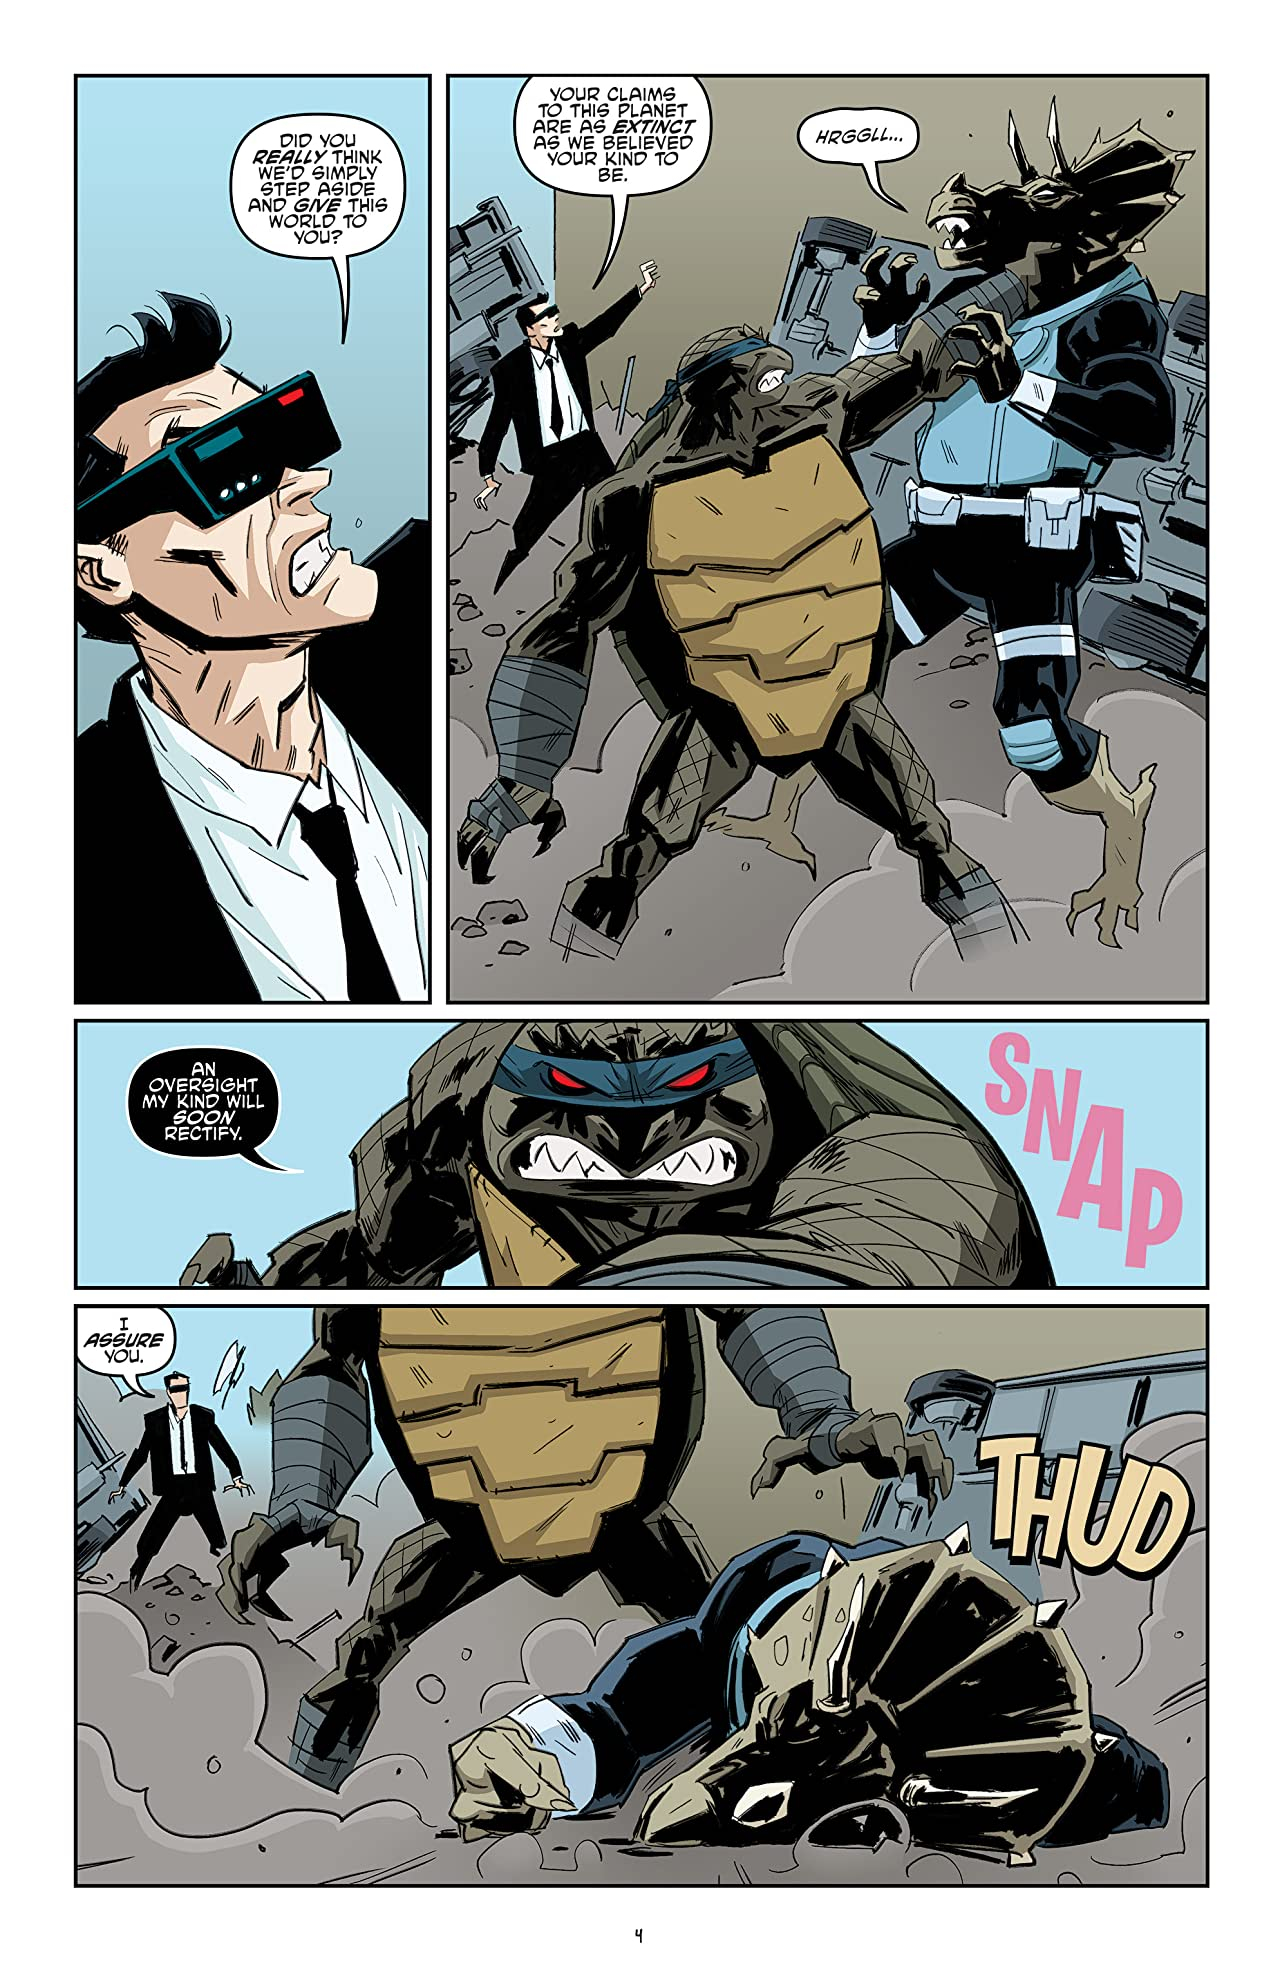 Teenage Mutant Ninja Turtles #79